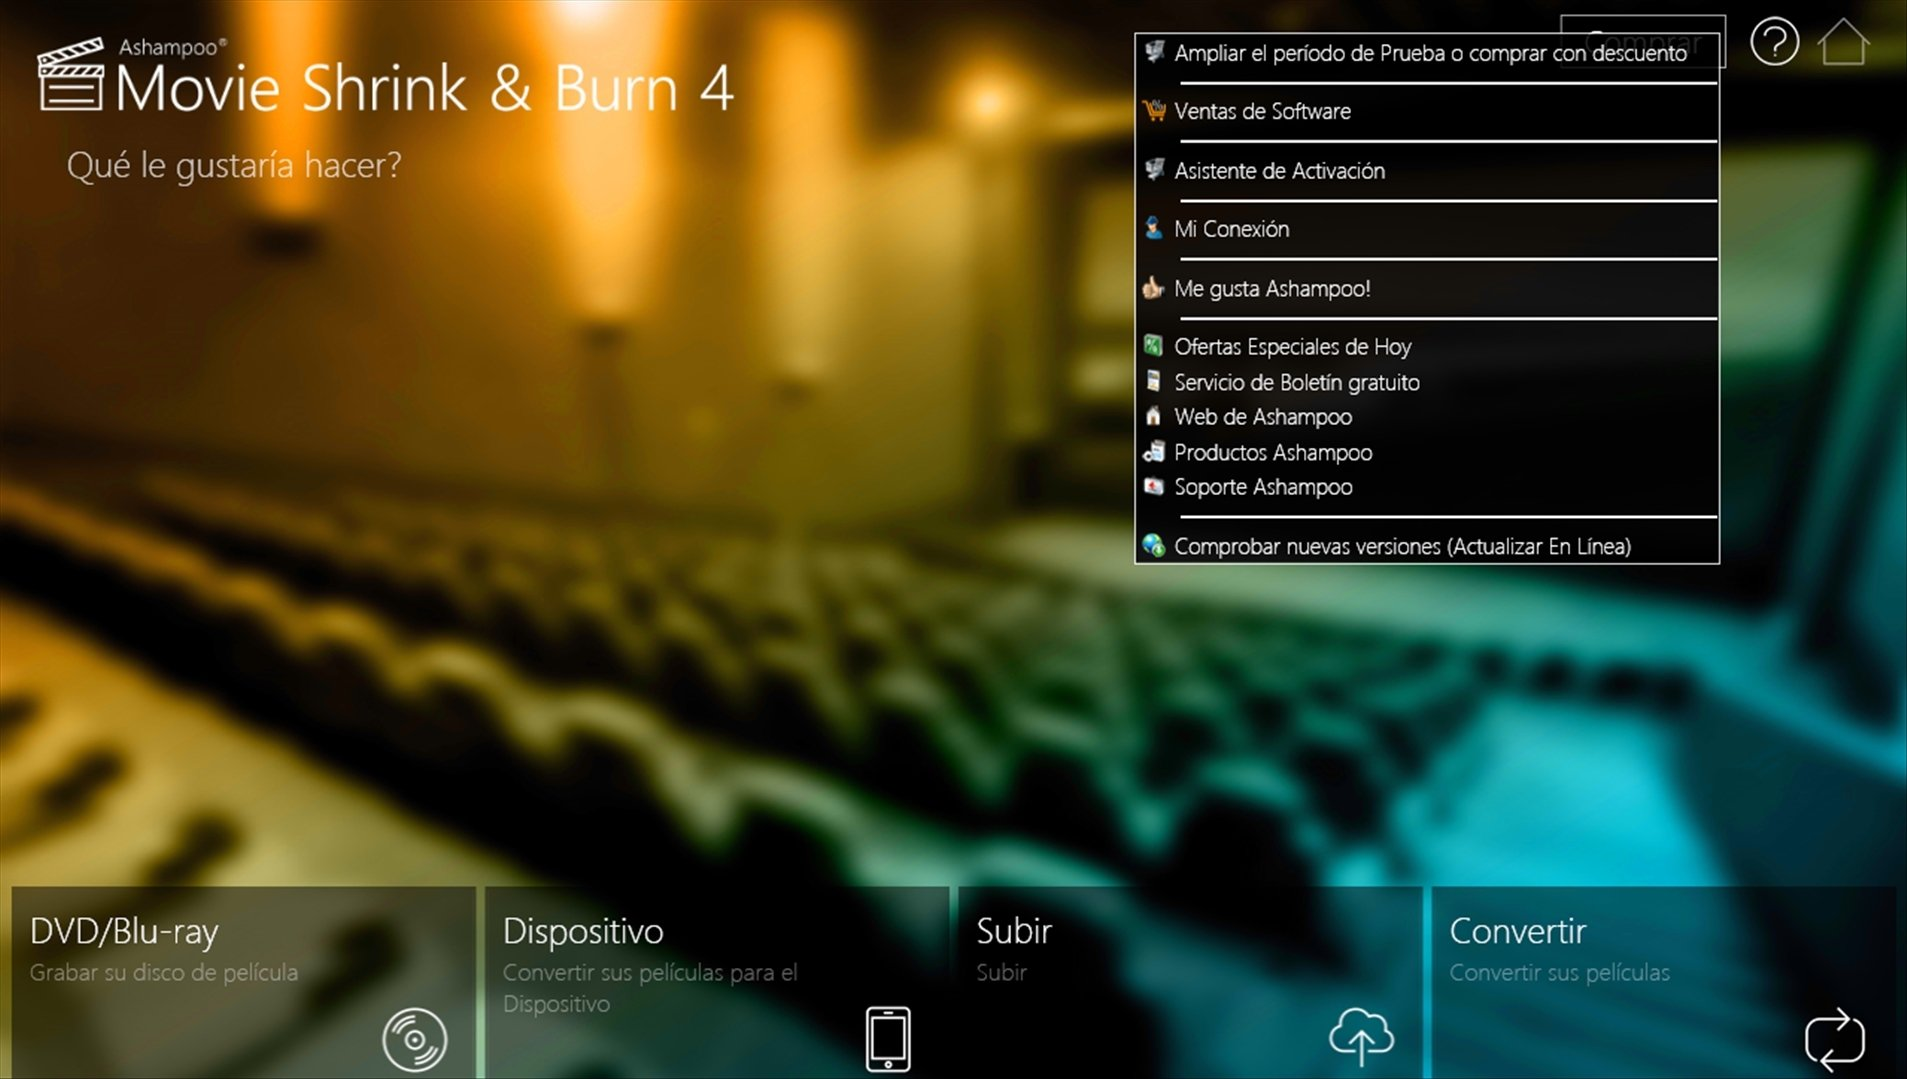 Download ashampoo movie shrink & burn 4. 0. 2 (free) for windows.